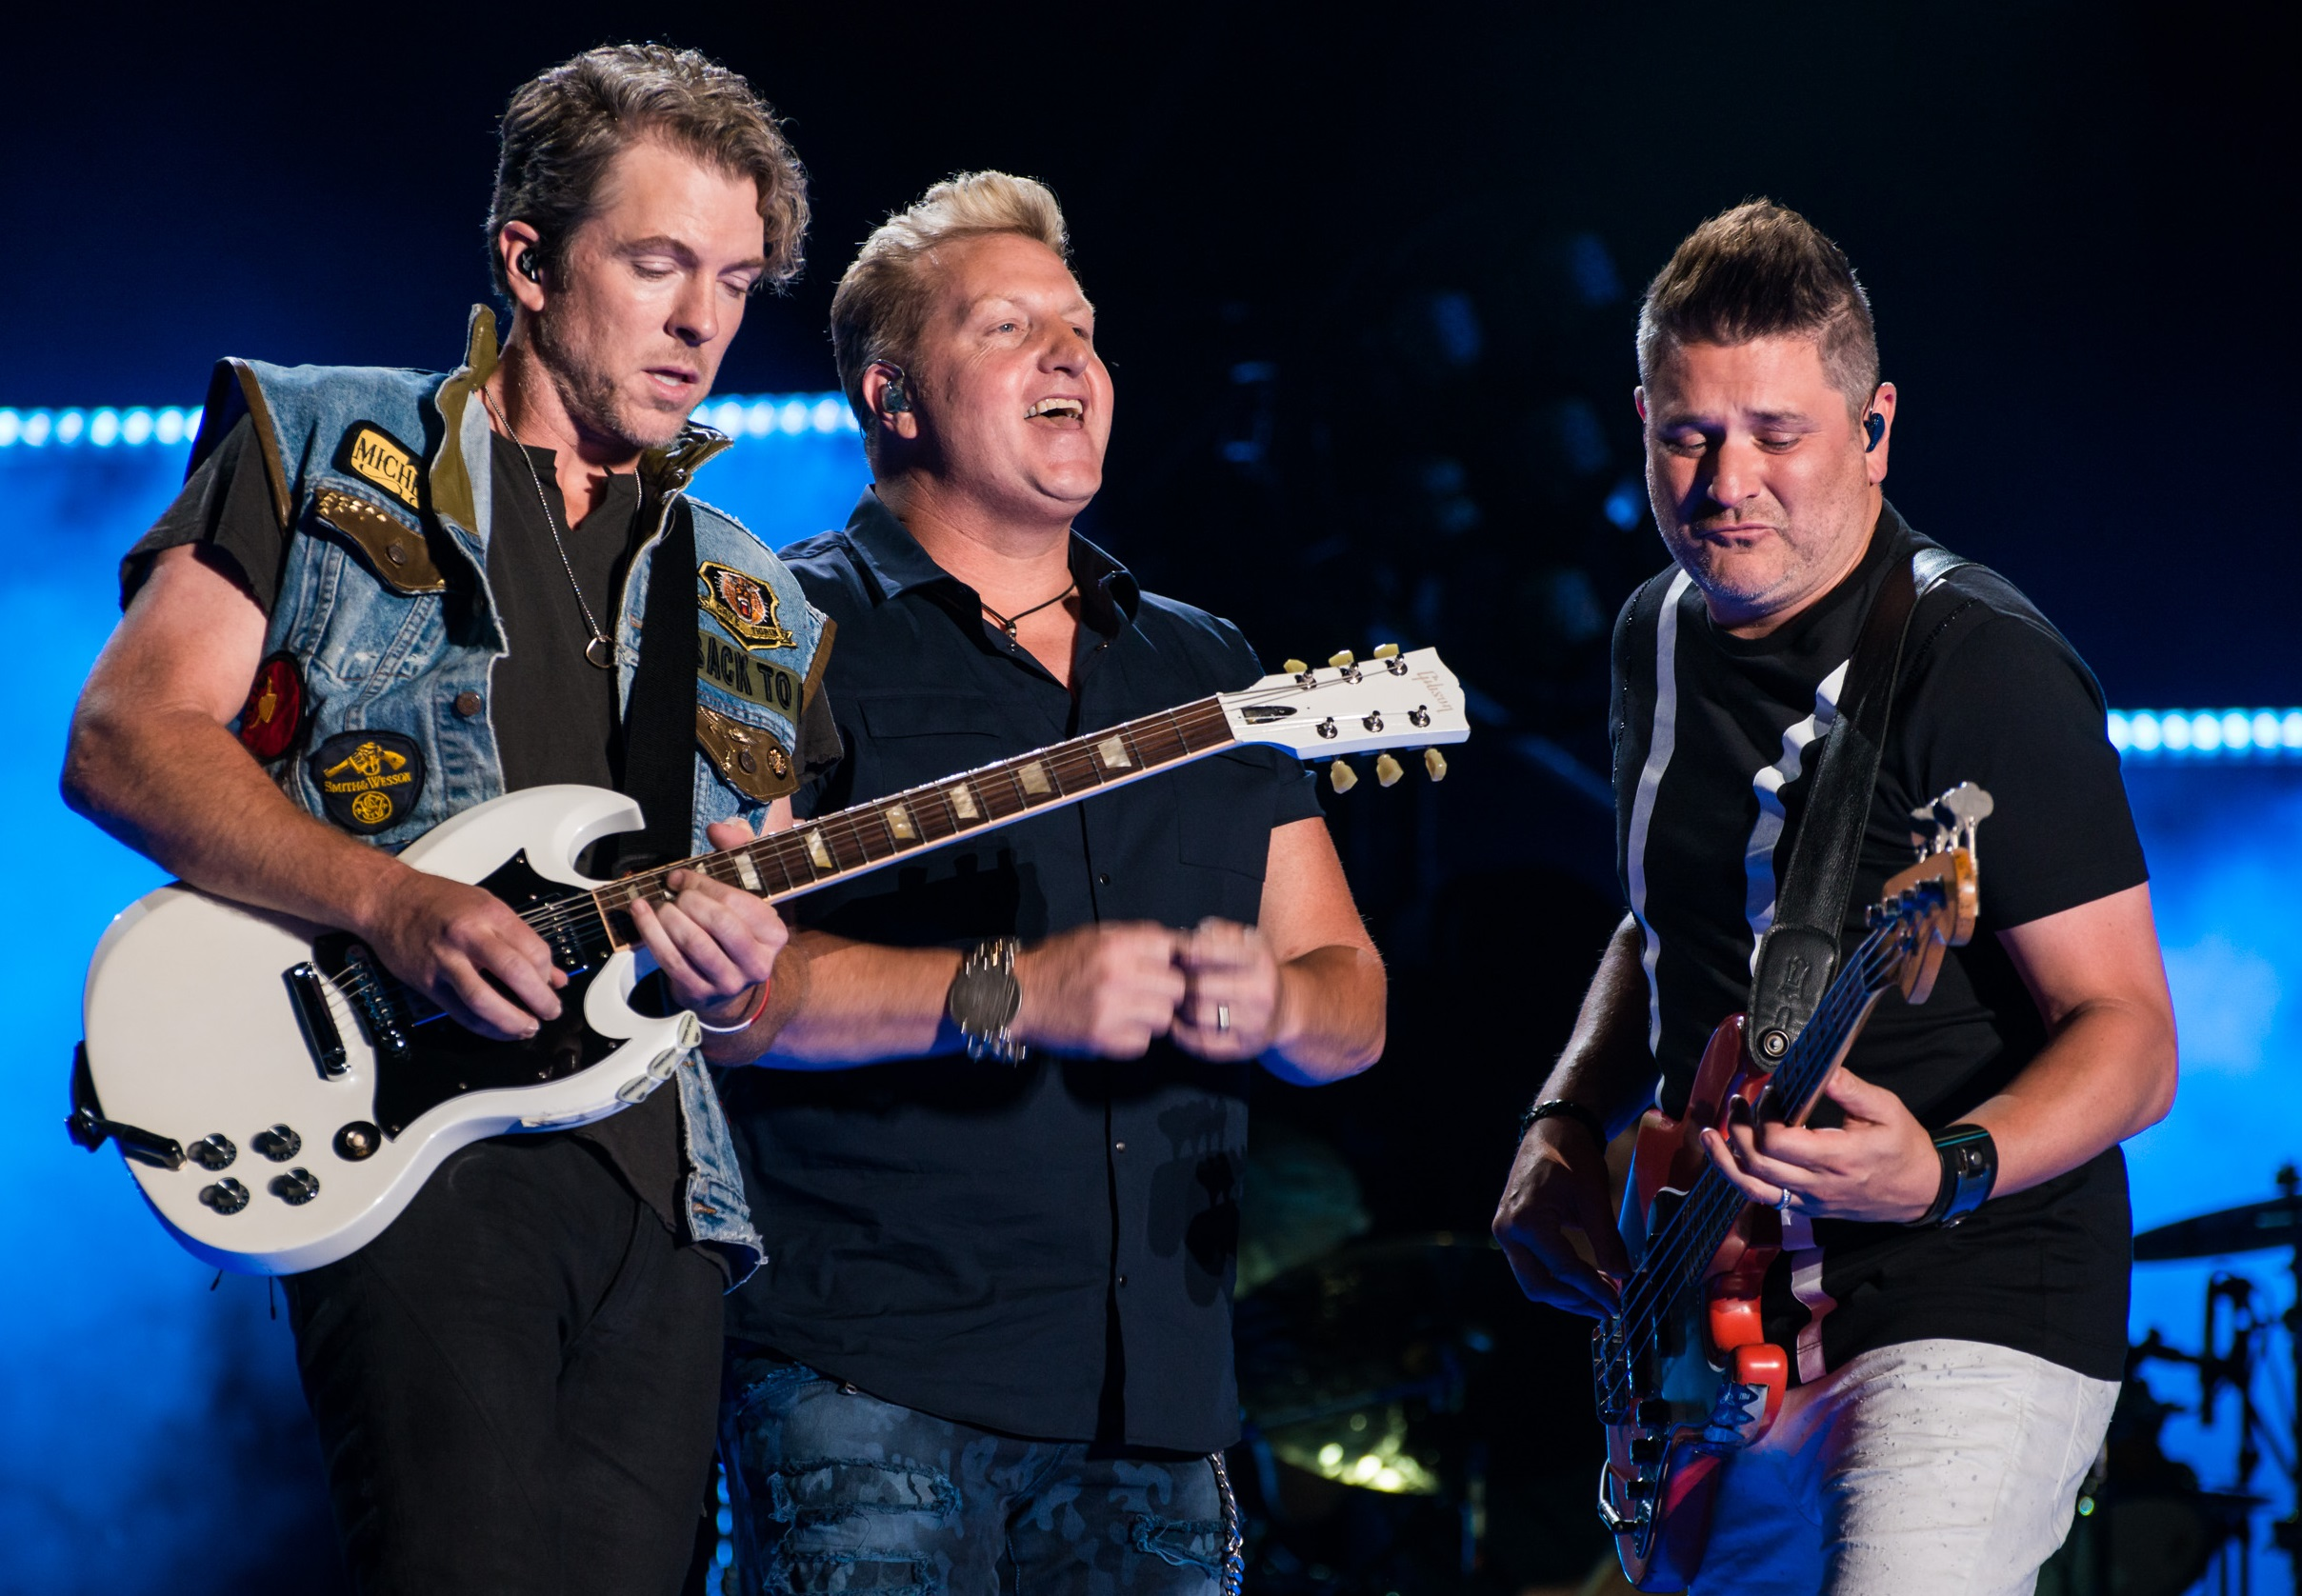 Rascal Flatts Tap Dan + Shay, Carly Pearce For Back to Us Tour